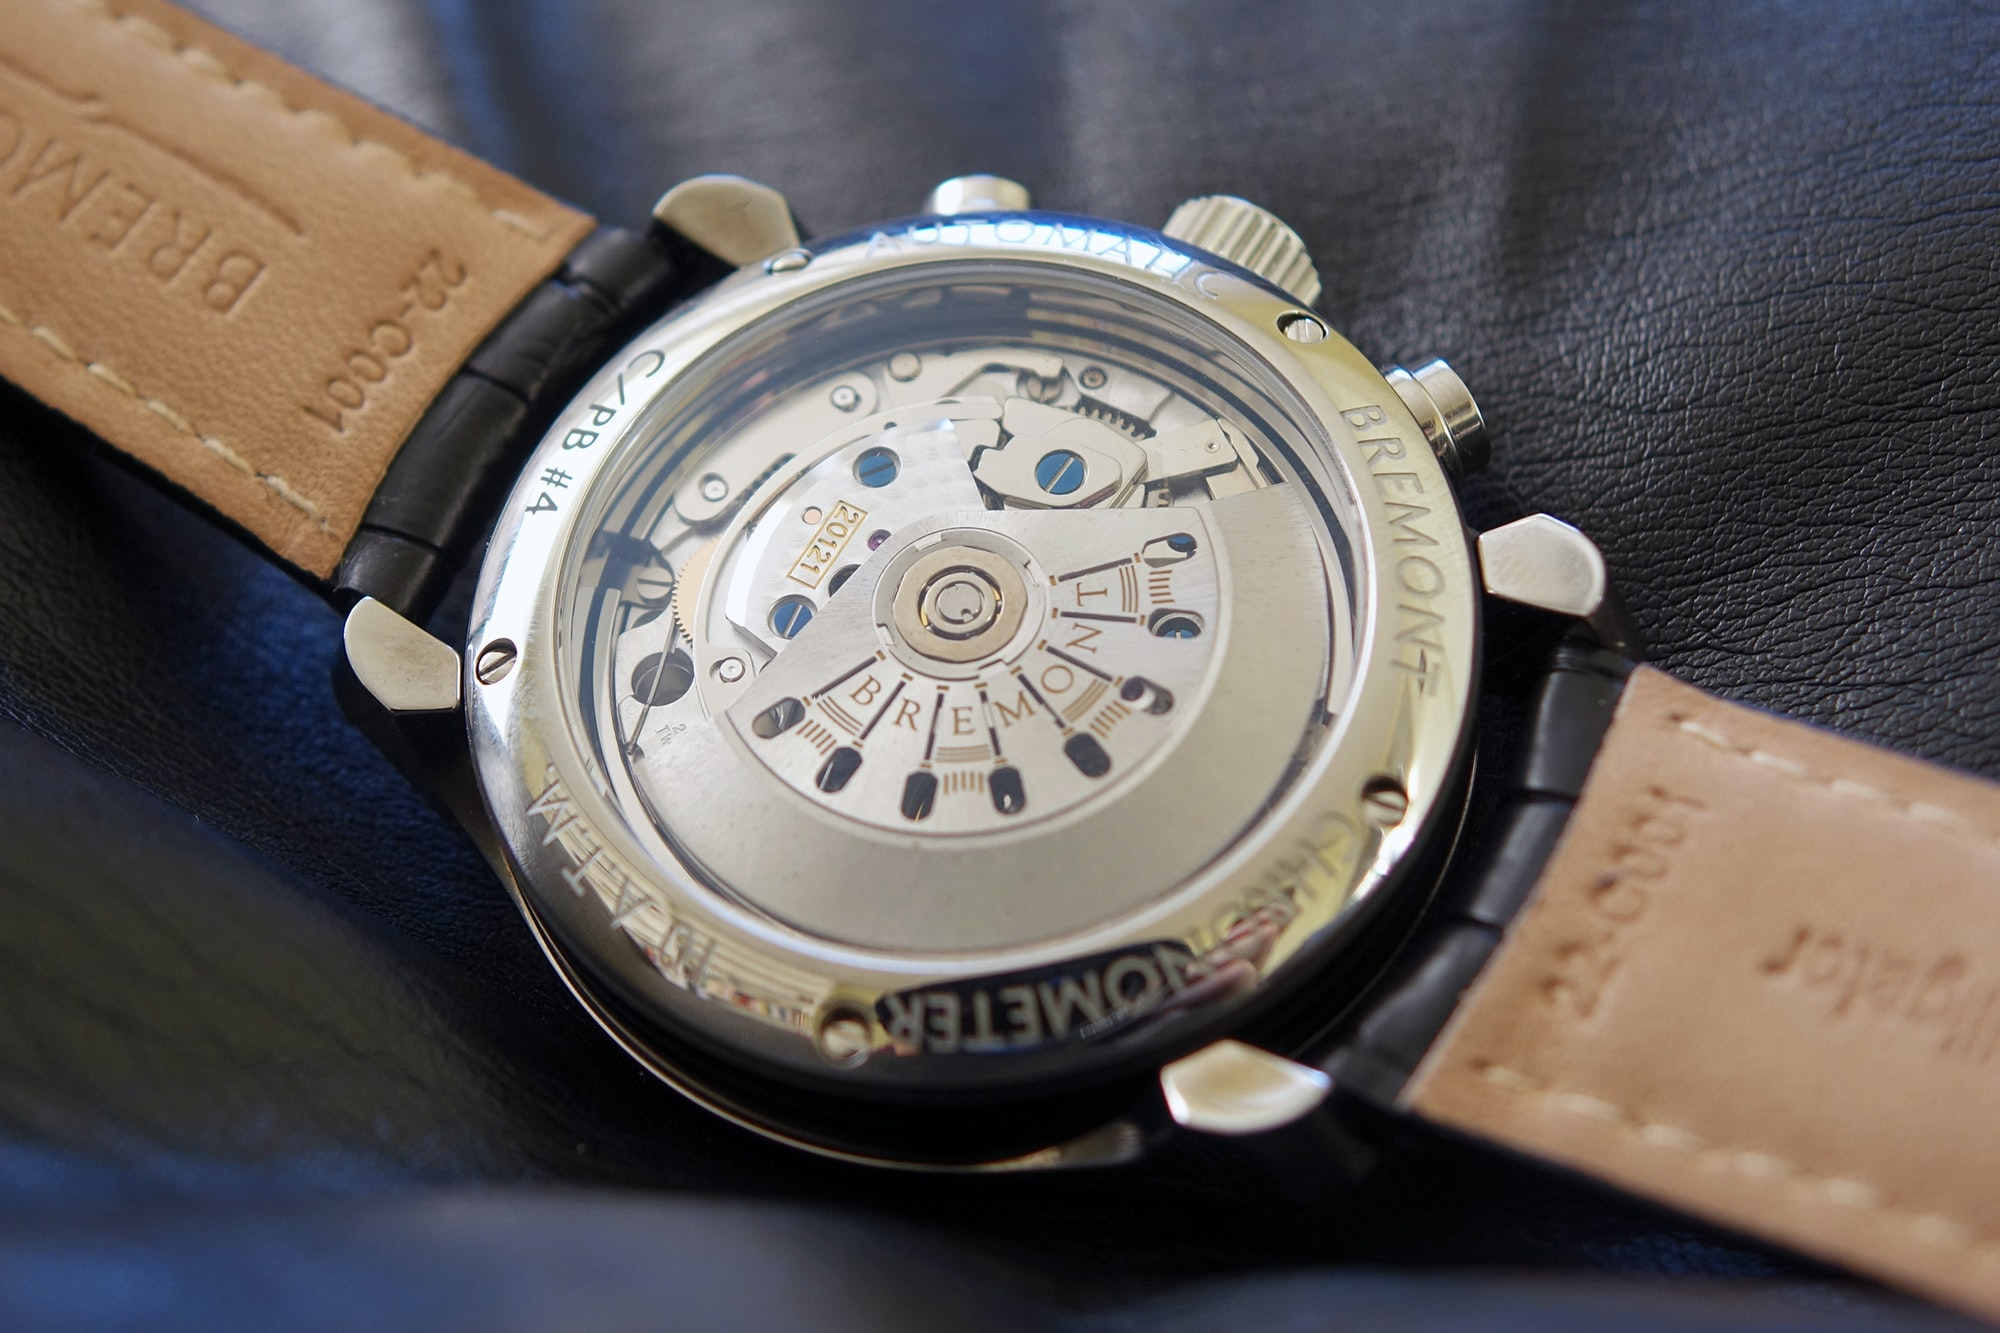 Bremont ALT1-C/PB caseback Hands-On: The Bremont ALT1-C/PB, A Dress Chronograph With A Difference Hands-On: The Bremont ALT1-C/PB, A Dress Chronograph With A Difference DSC07633